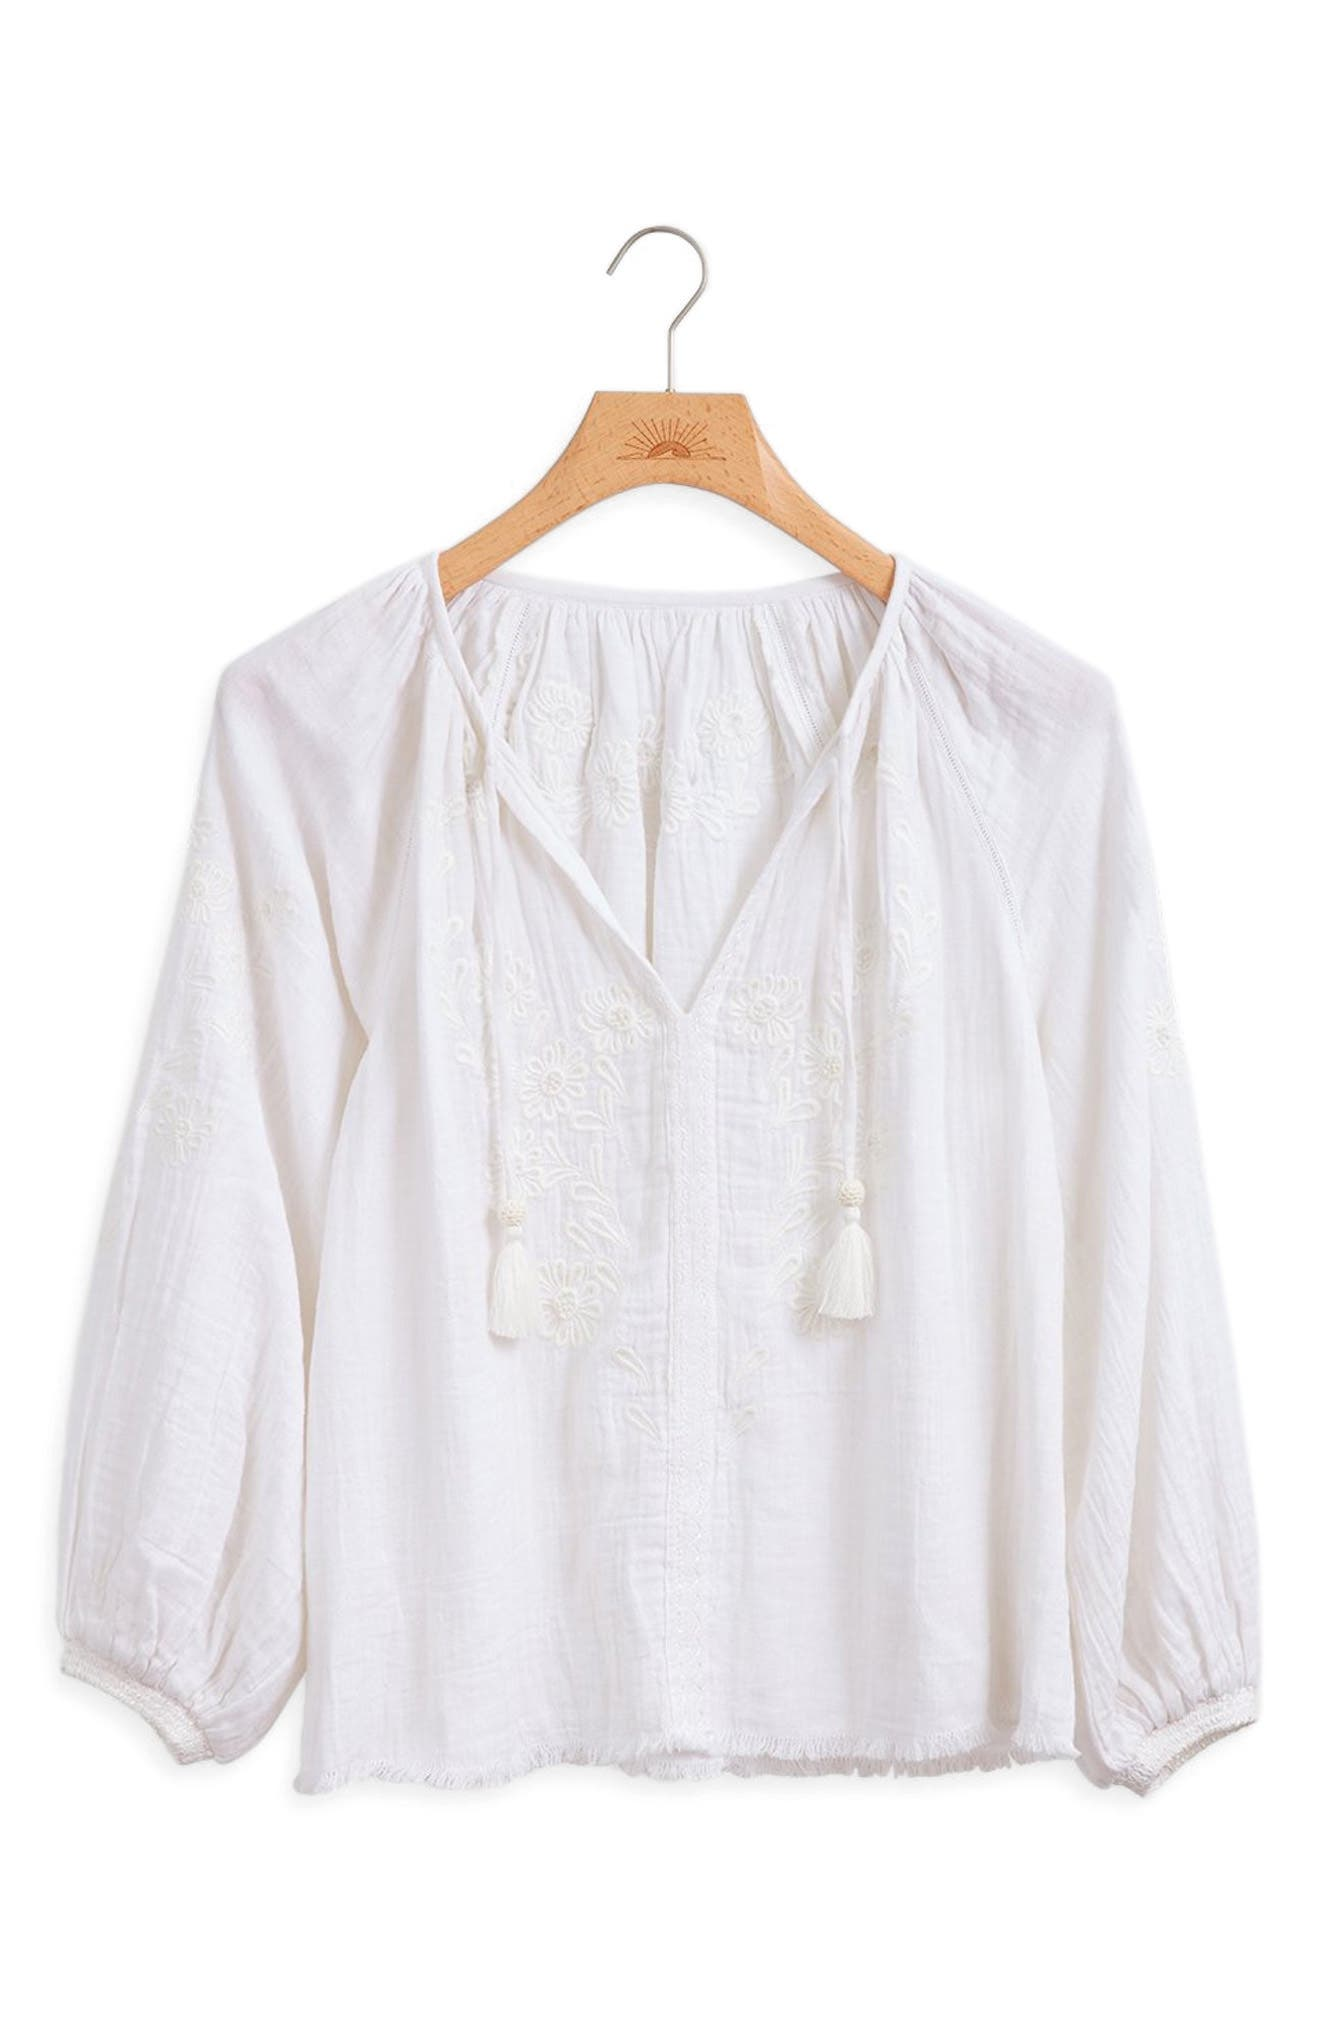 Faherty Blossom Blouse   Nordstrom